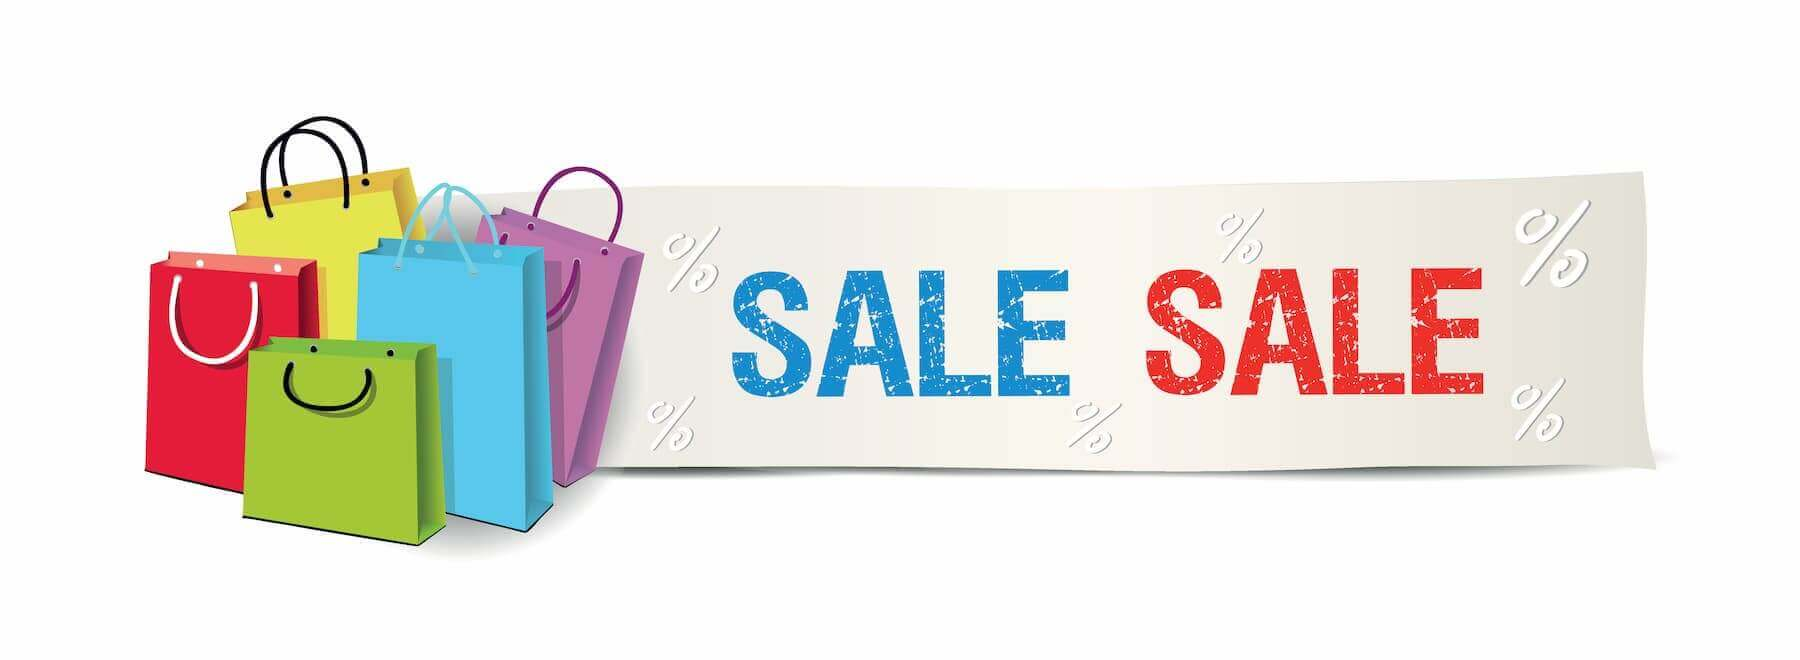 sale shopping aktionstage